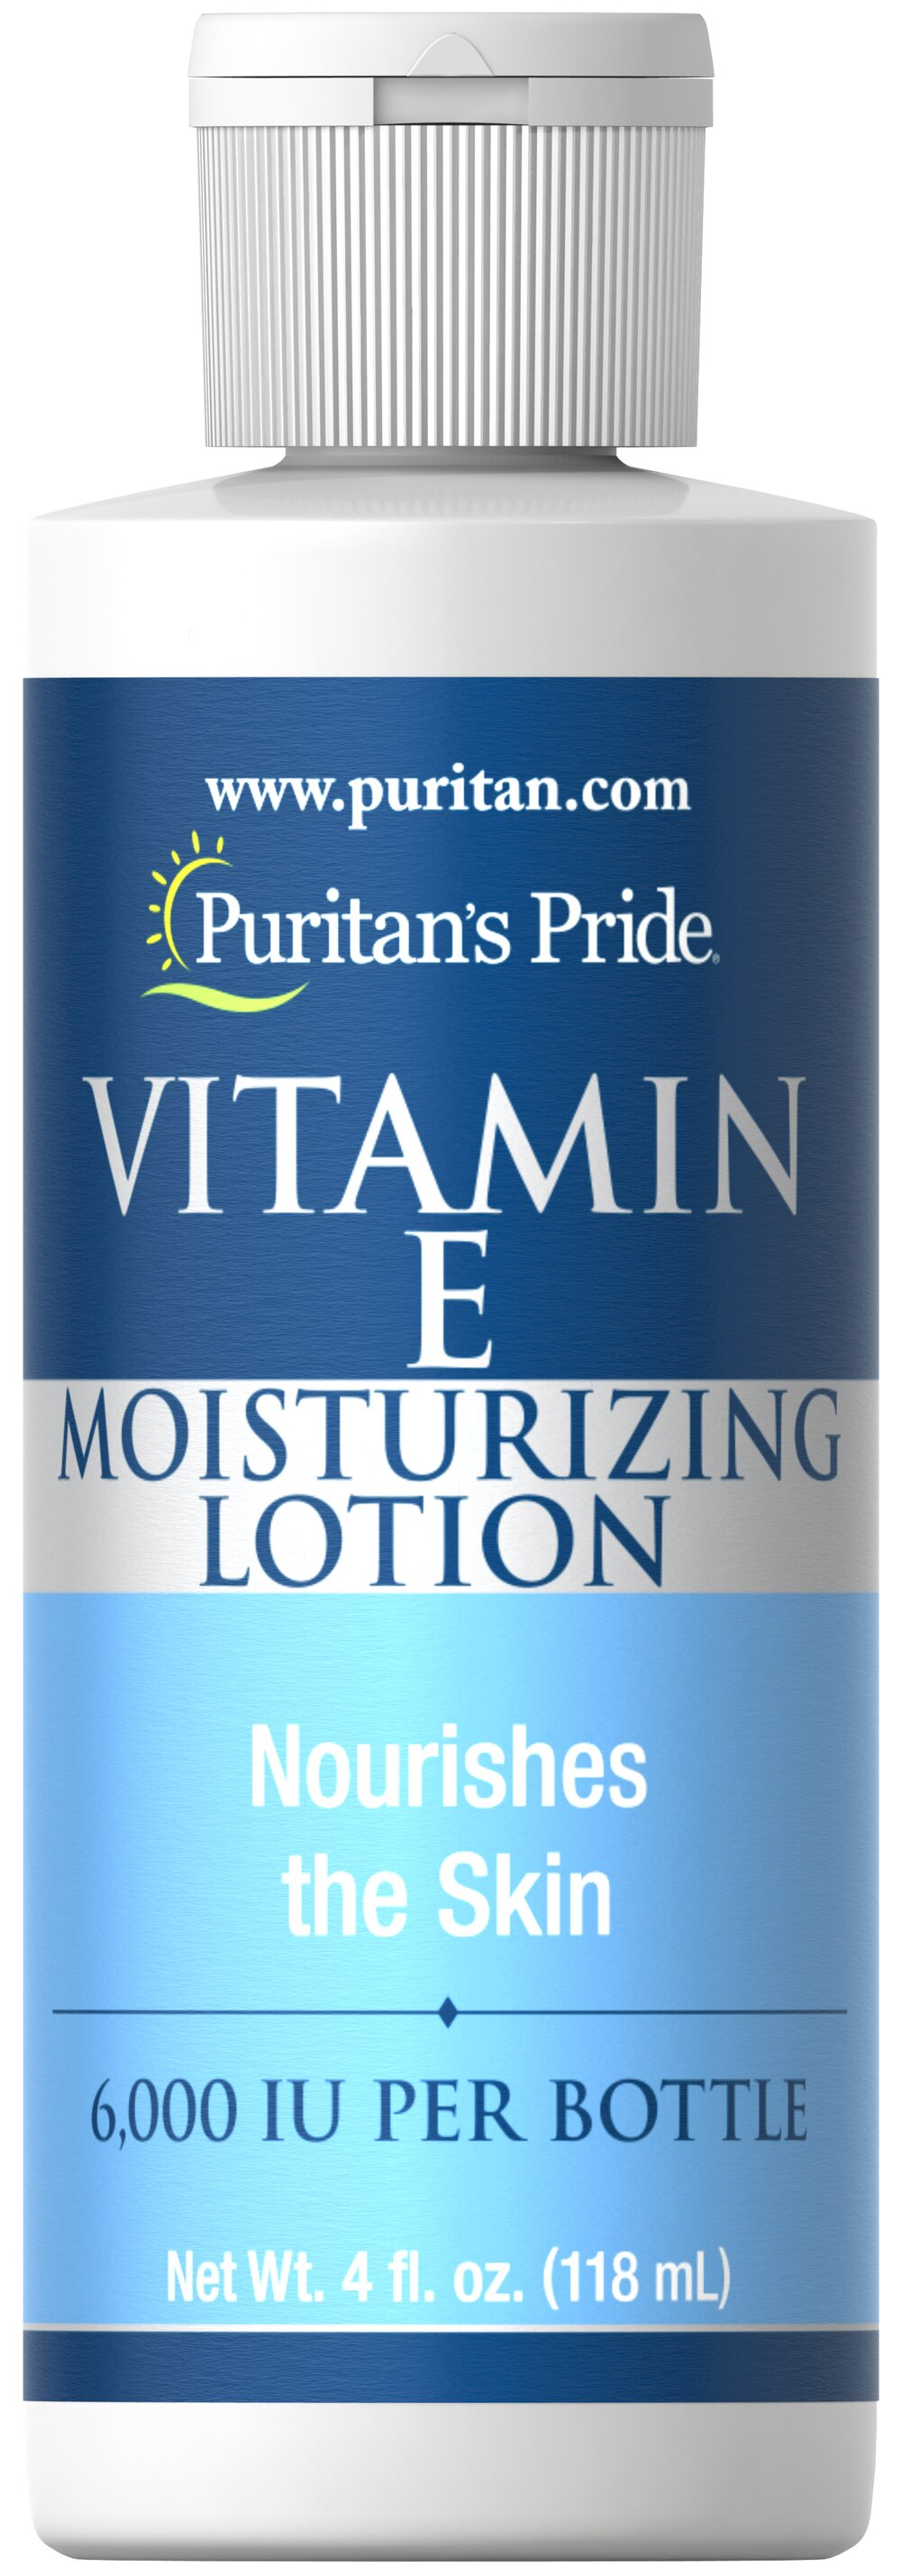 Vitamin E Moisturizing Lotion 6,000 IU <p>The All-Over Body Moisturizer</p>  <p>Now give your skin the natural benefits of Vitamin E Lotion. This rich lotion gives you 6,000 IU of Vitamin E per bottle with the added moisturizing benefits of natural Wheat Germ Oil. The protective emollient action maintains the natural moisture balance of the skin leaving even the driest skin smooth all over.</p> 4 oz Lotion 6000 IU $7.19